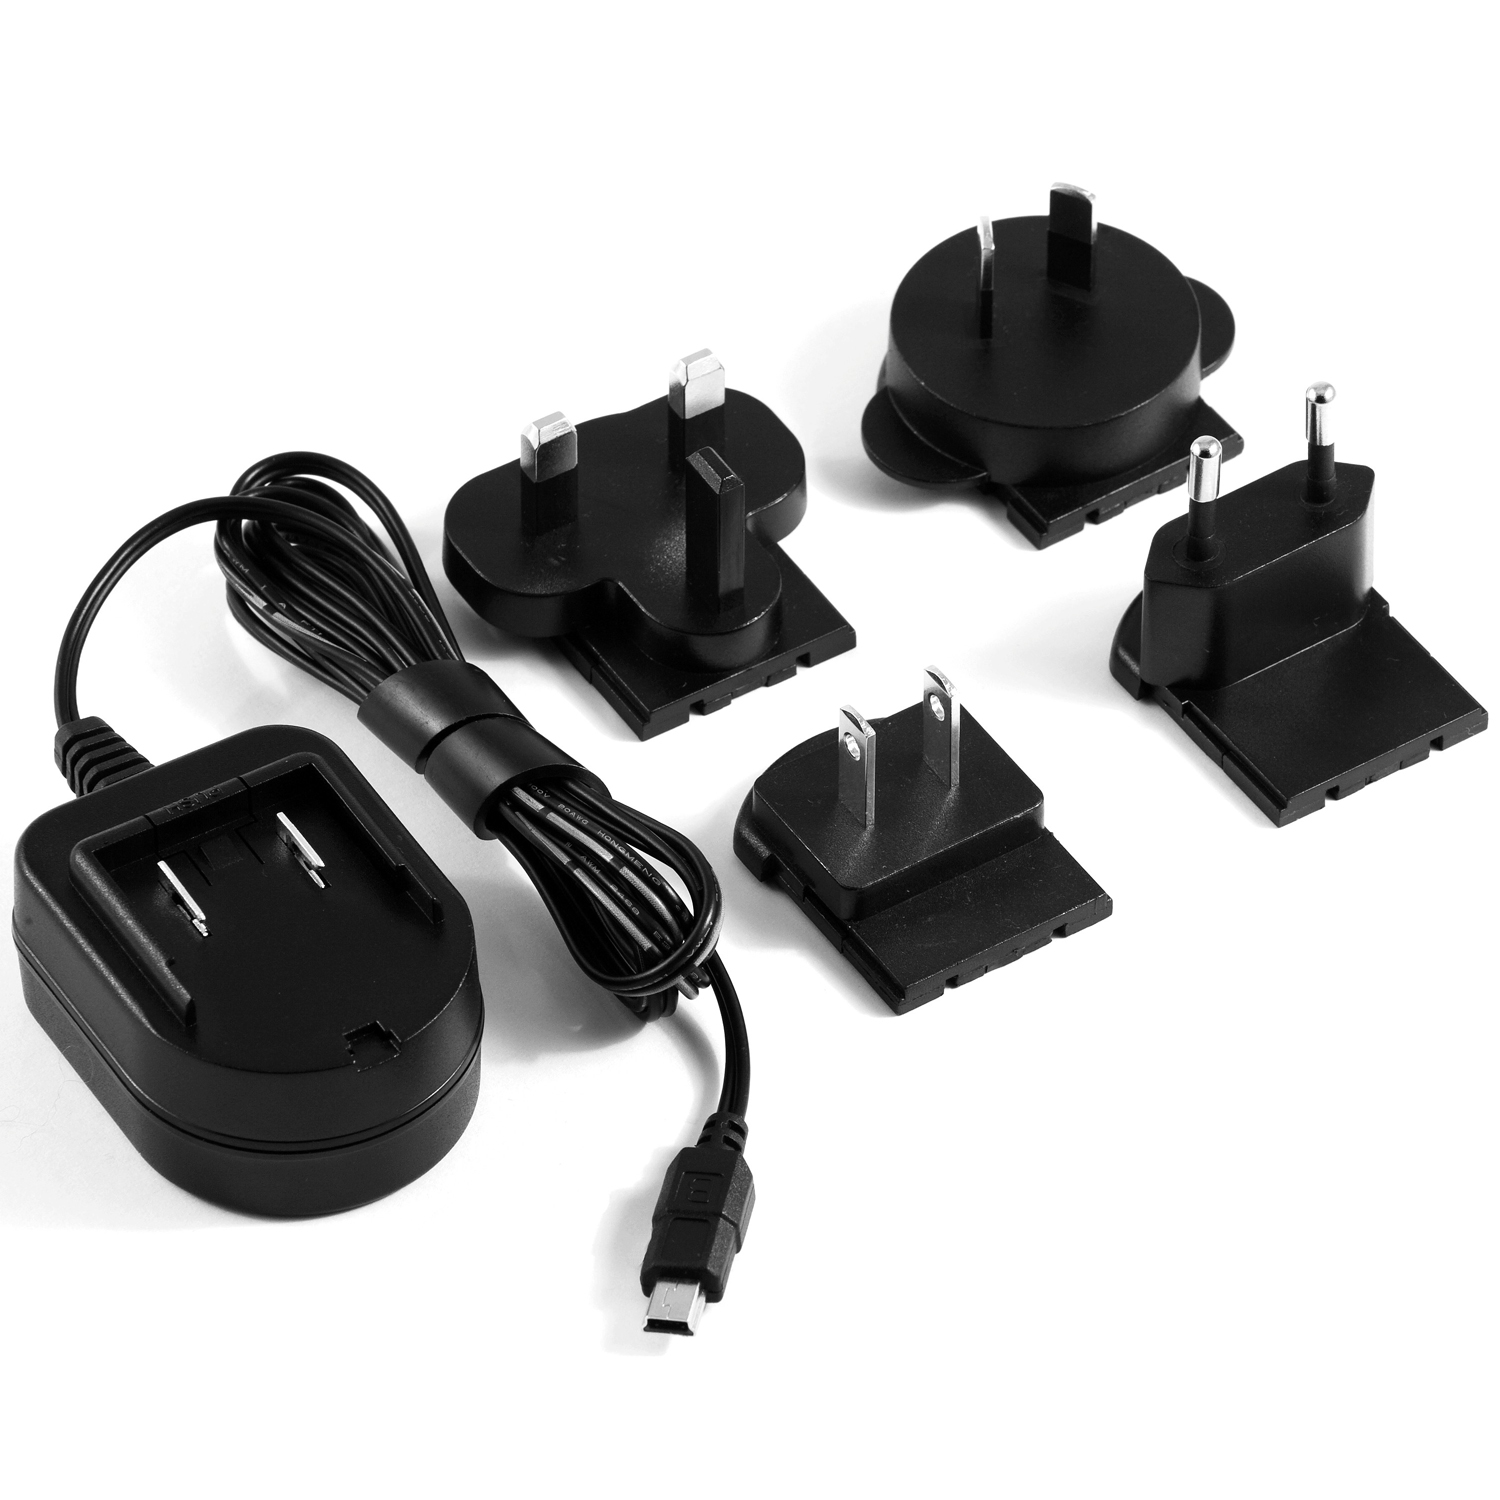 Contour Universal Wall Charger with Interchangeable Prongs for International Use